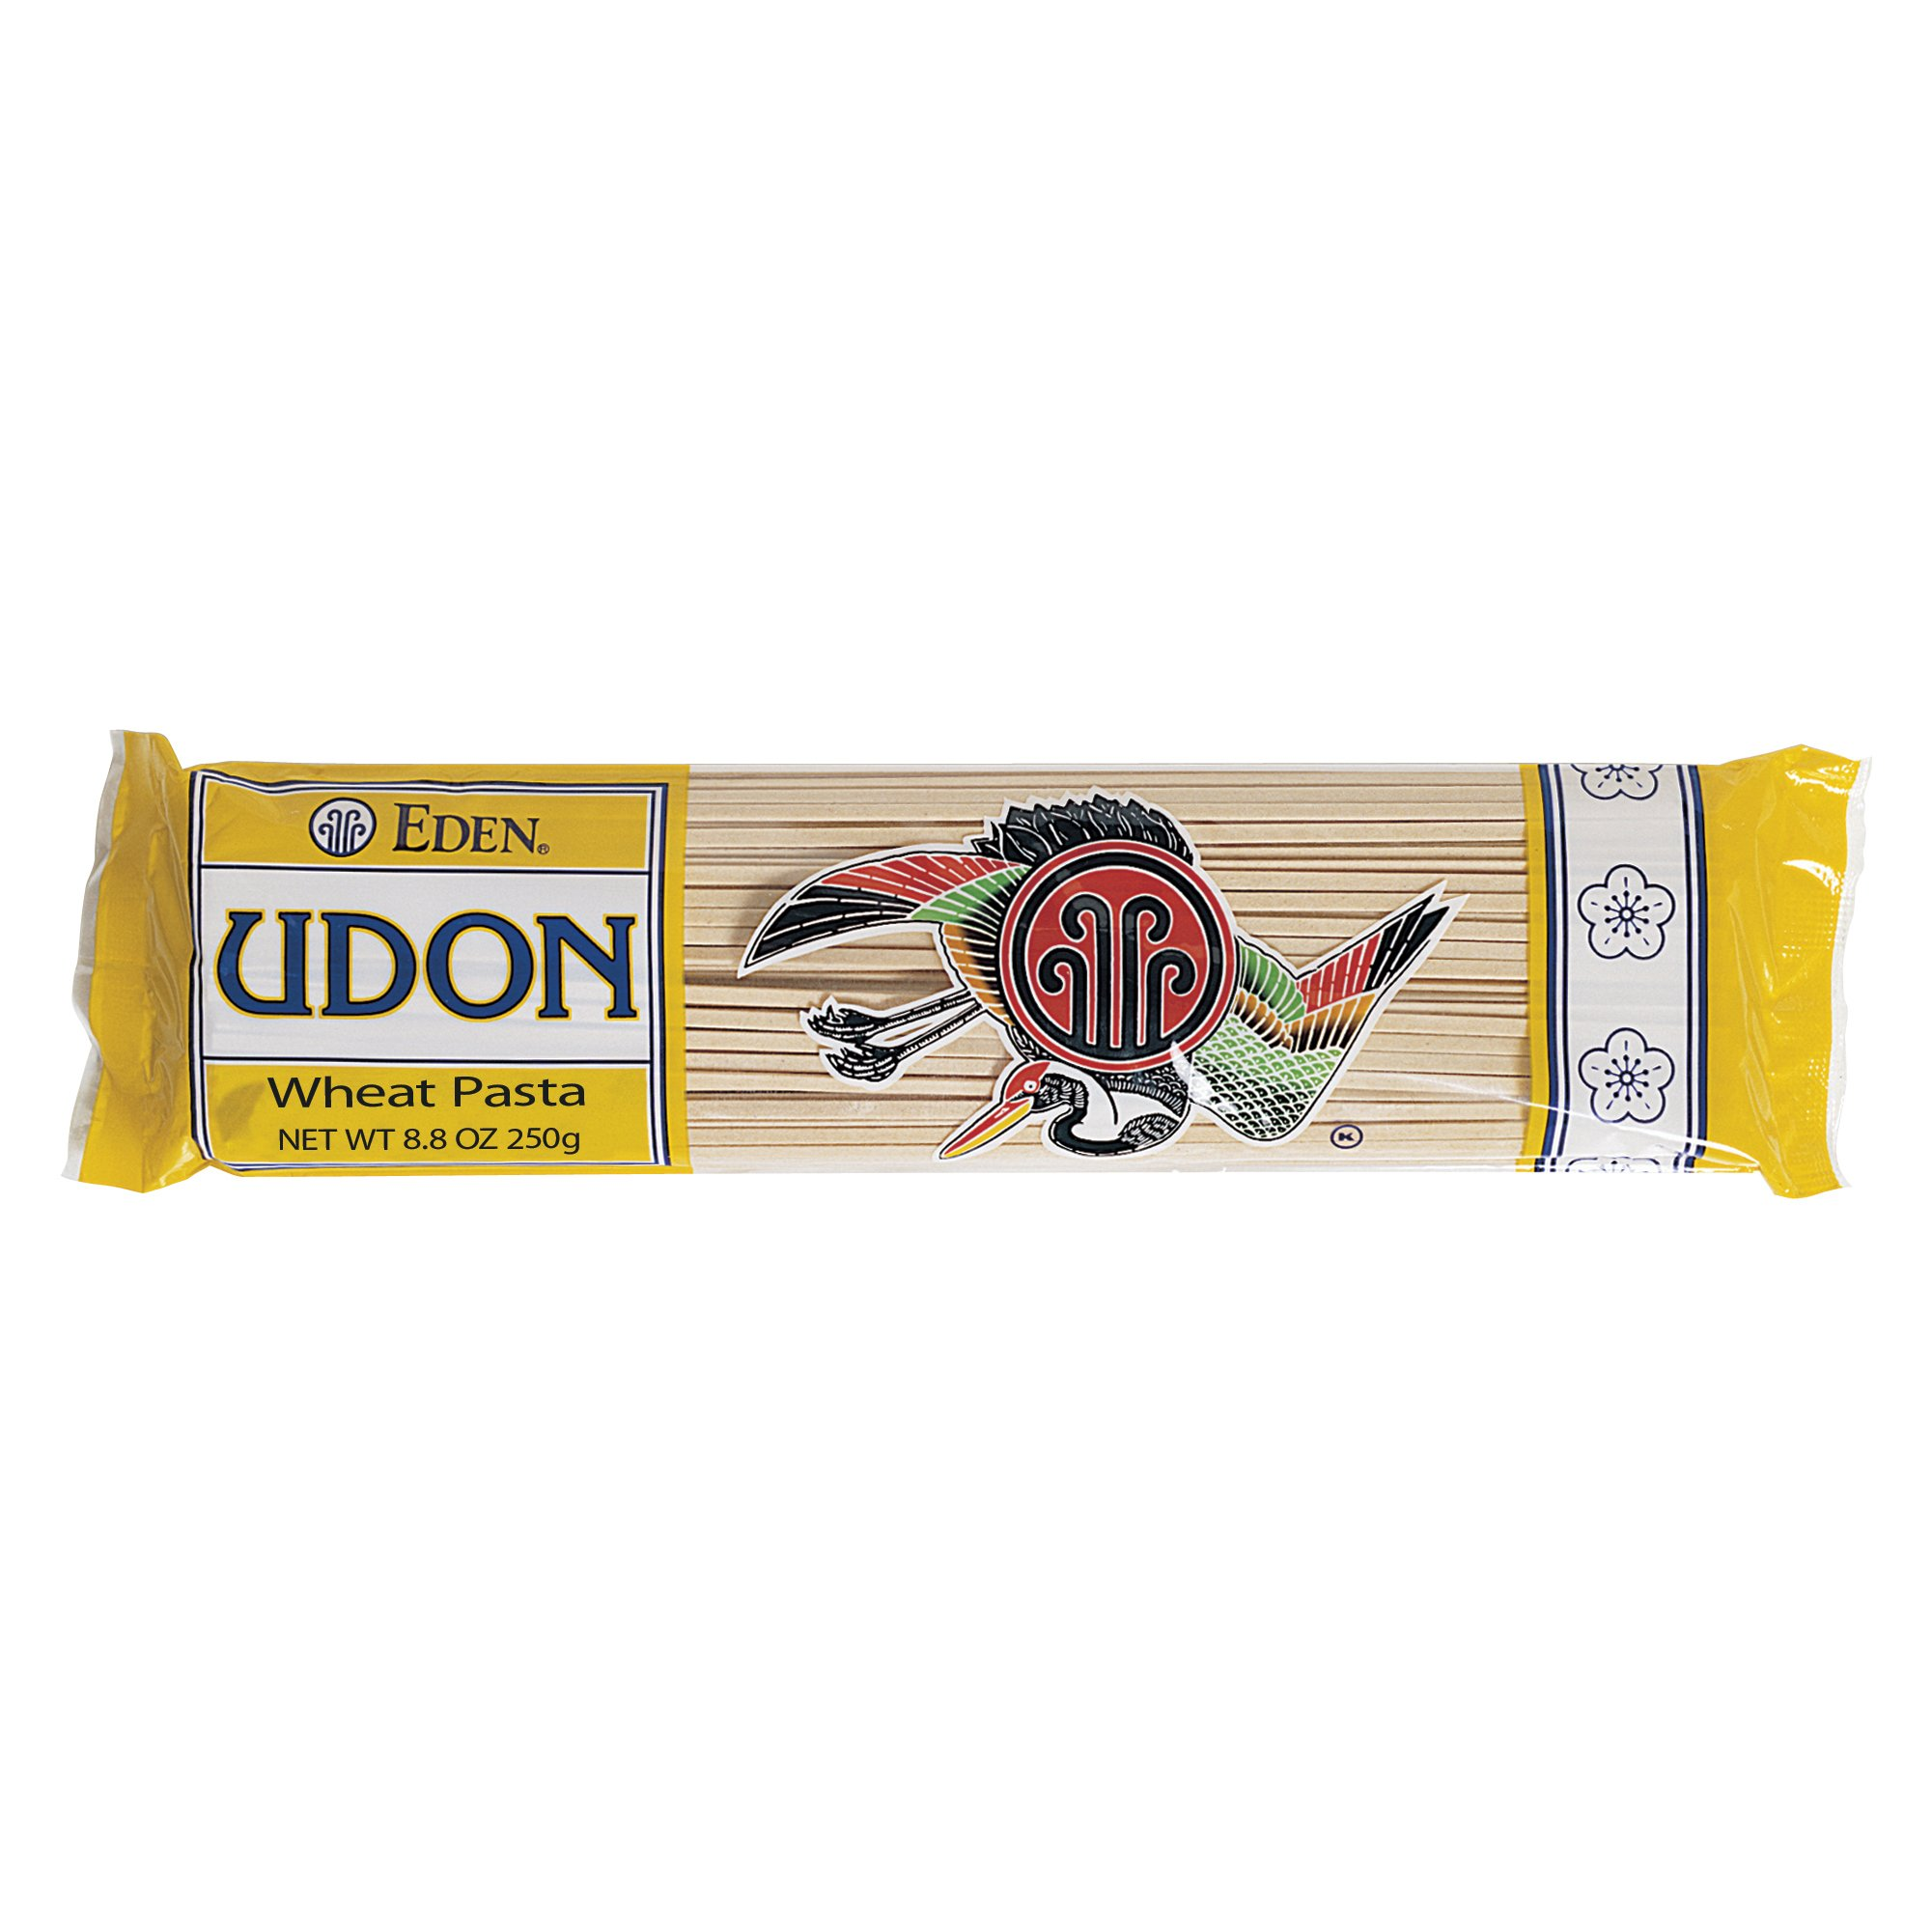 Eden Udon Wheat Pasta, 8.8-Ounce Packages (Pack of 12) by Eden